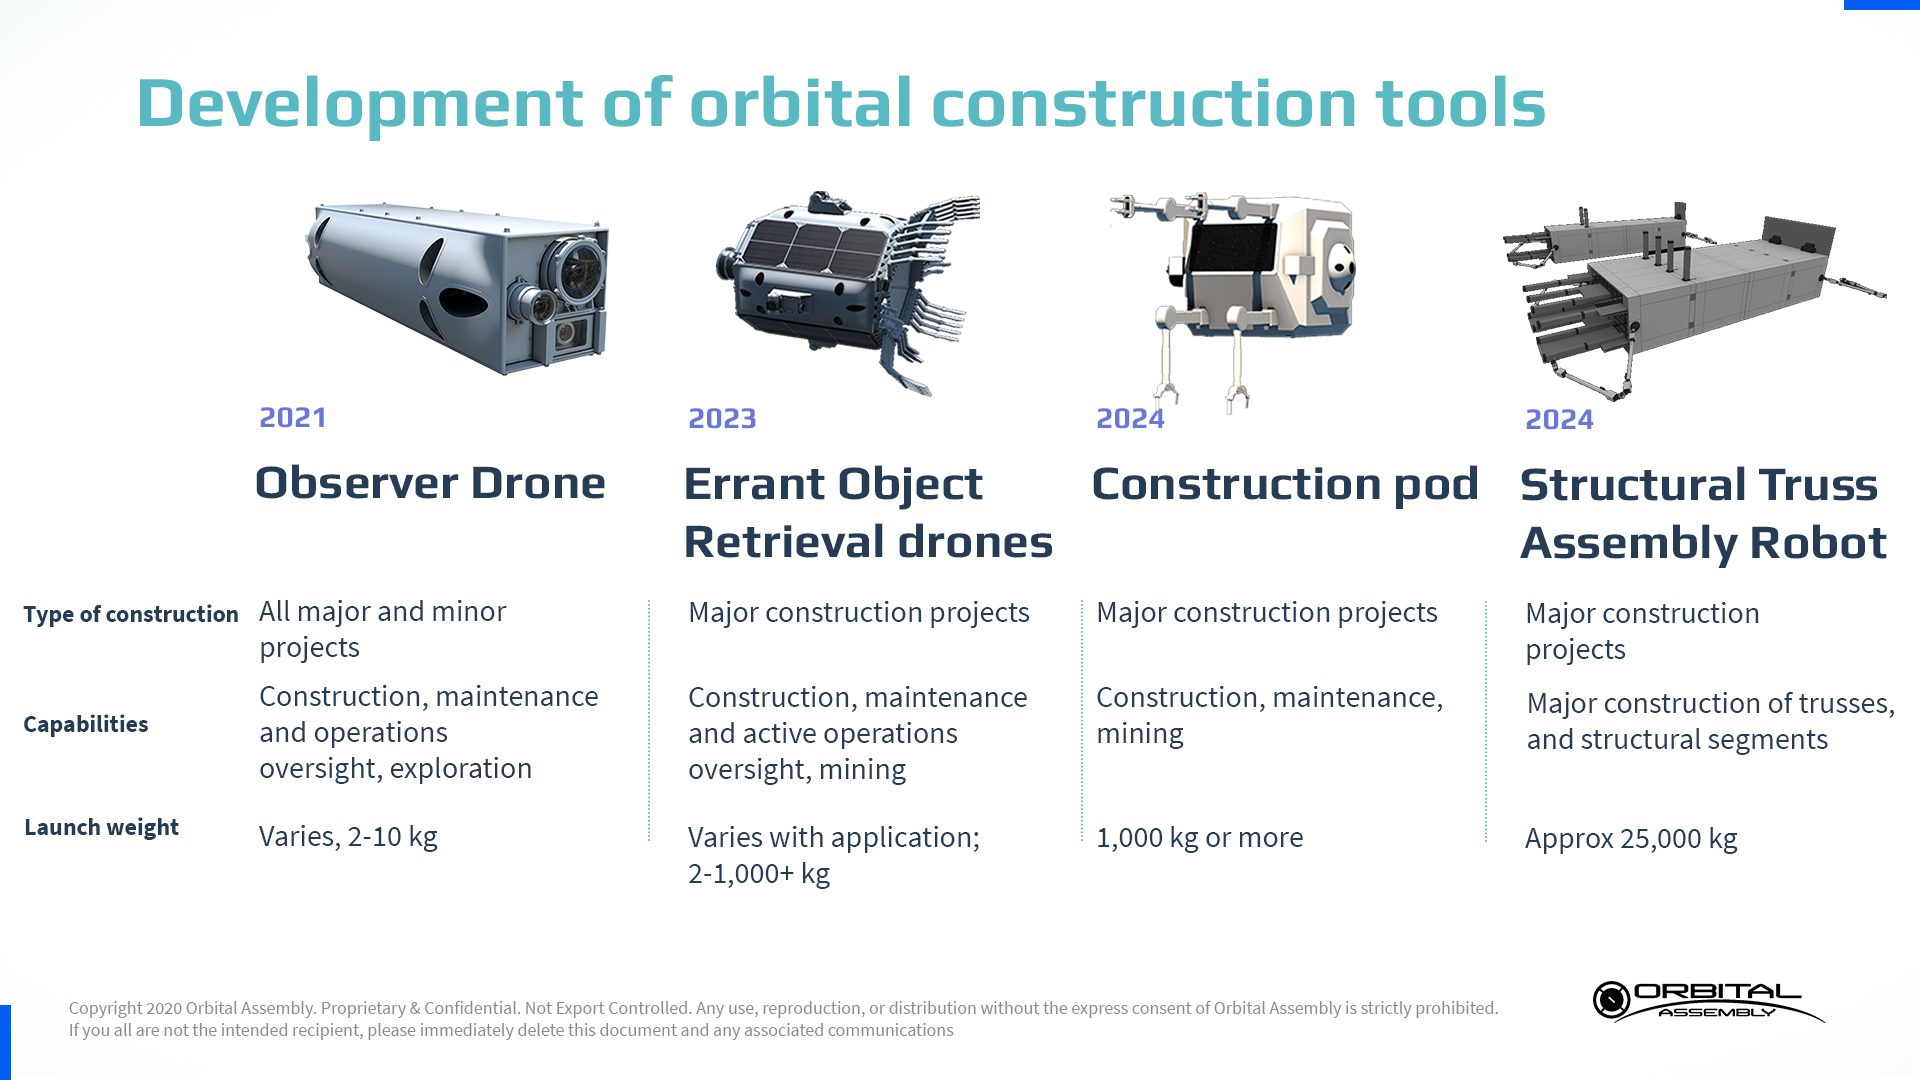 Development of orbital construction tools